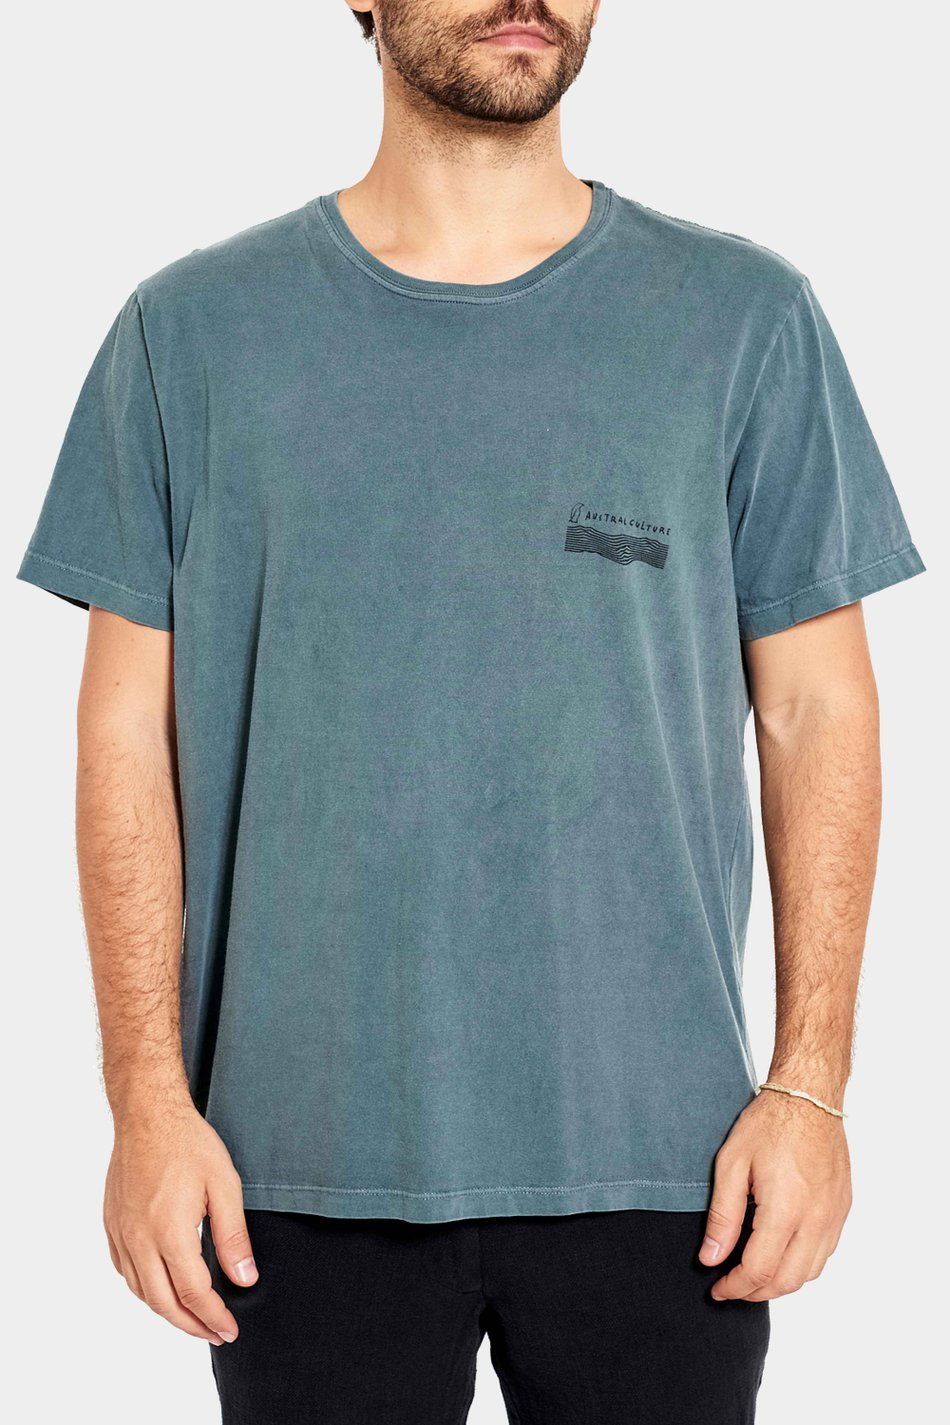 Camiseta Austral High Five Verde Floresta